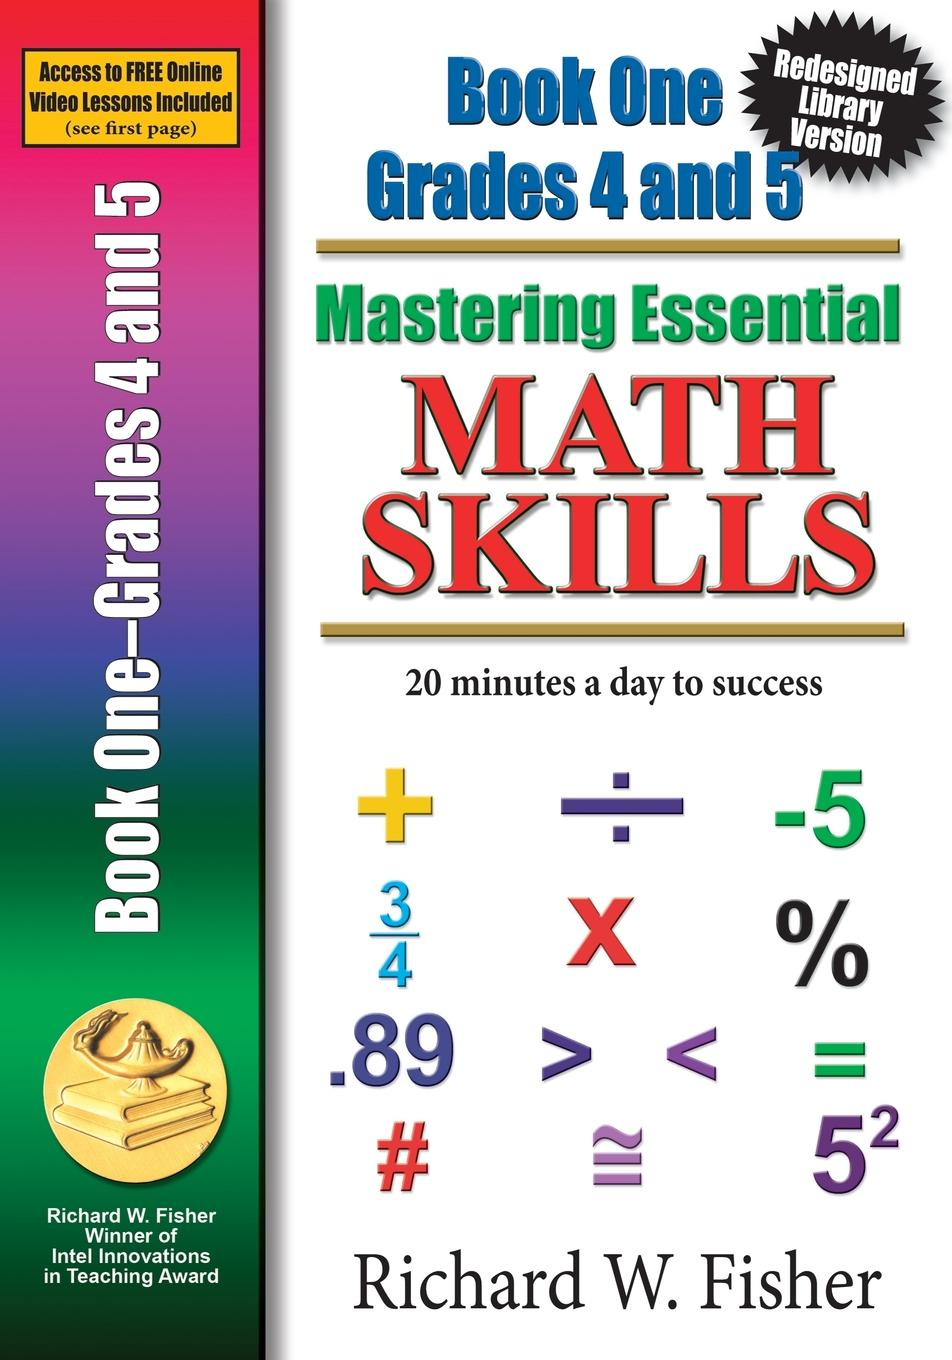 Richard W Fisher Mastering Essential Math Skills Book 1 Grades 4-5. Re-designed Library Version donald smith j bond math the theory behind the formulas